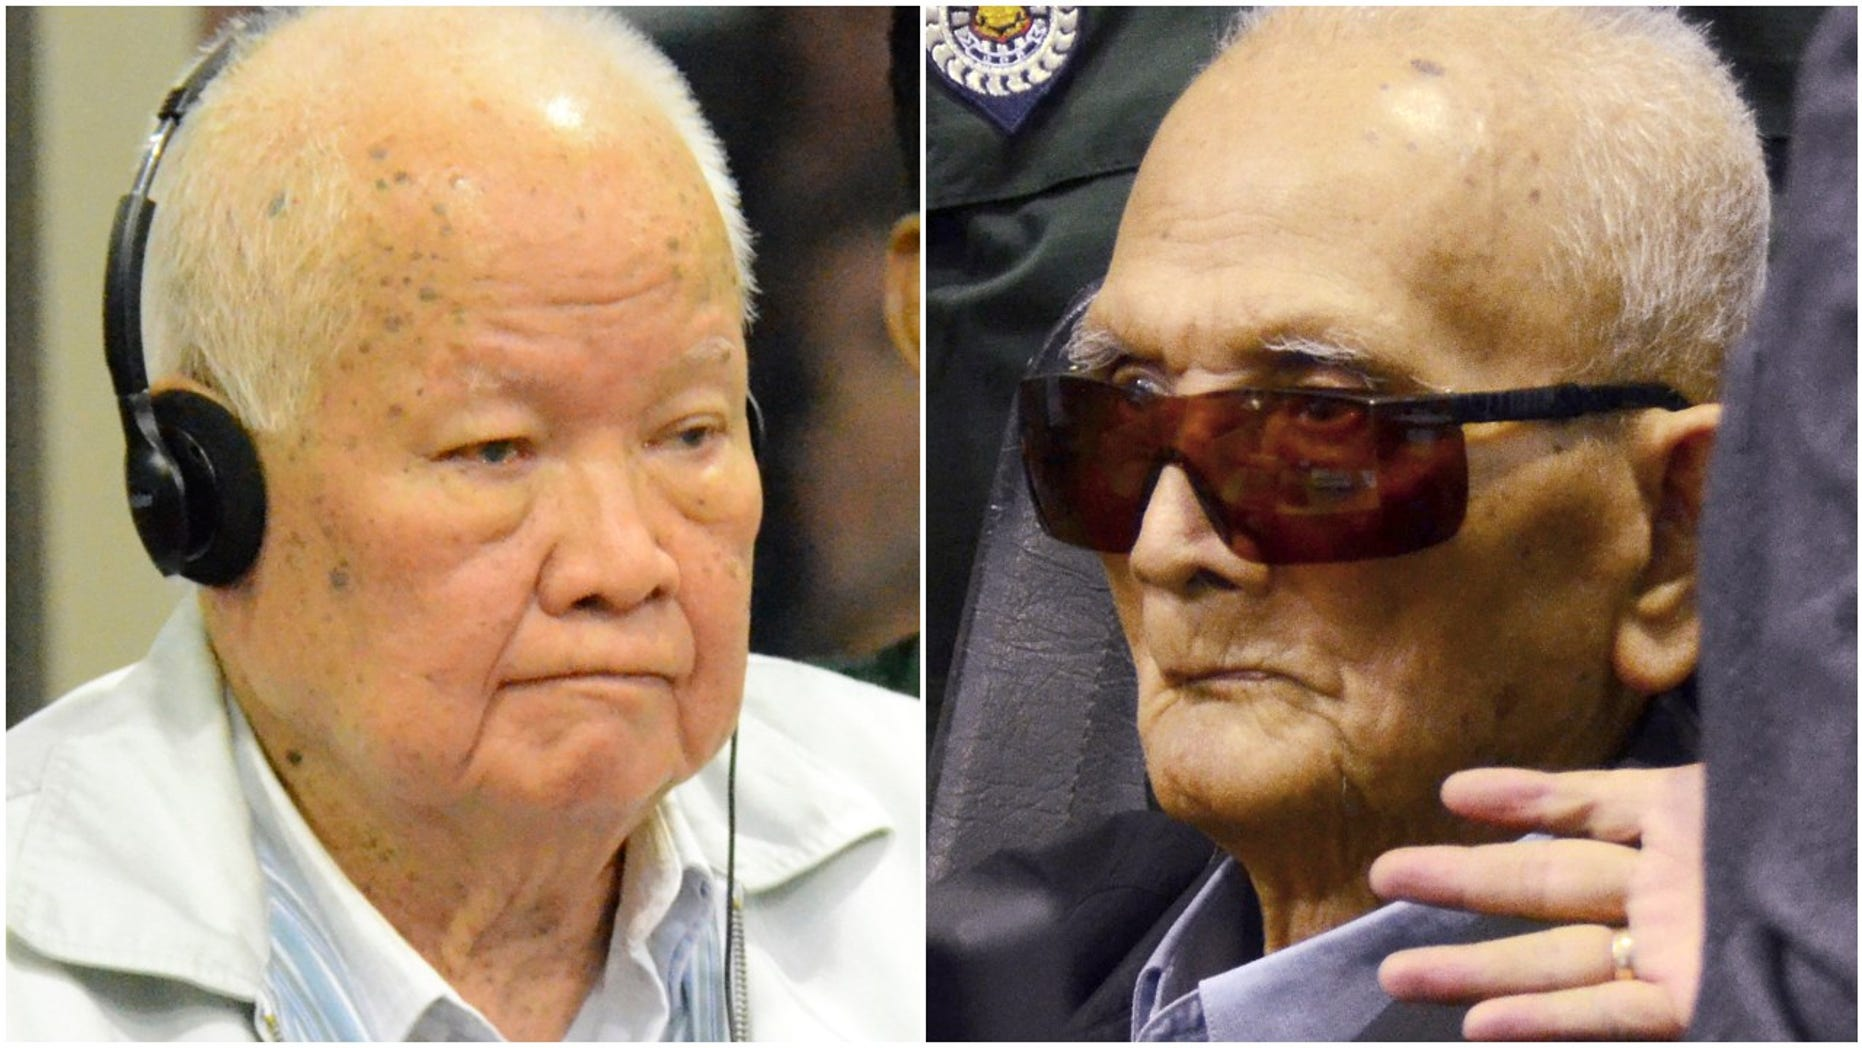 Khieu Samphan, left, former Khmer Rouge head of state, andNuon Chea, who was the Khmer Rouge's chief ideologist and No. 2 leader, were convicted of crimes against humanity Friday by an international tribunal. (Associated Press)